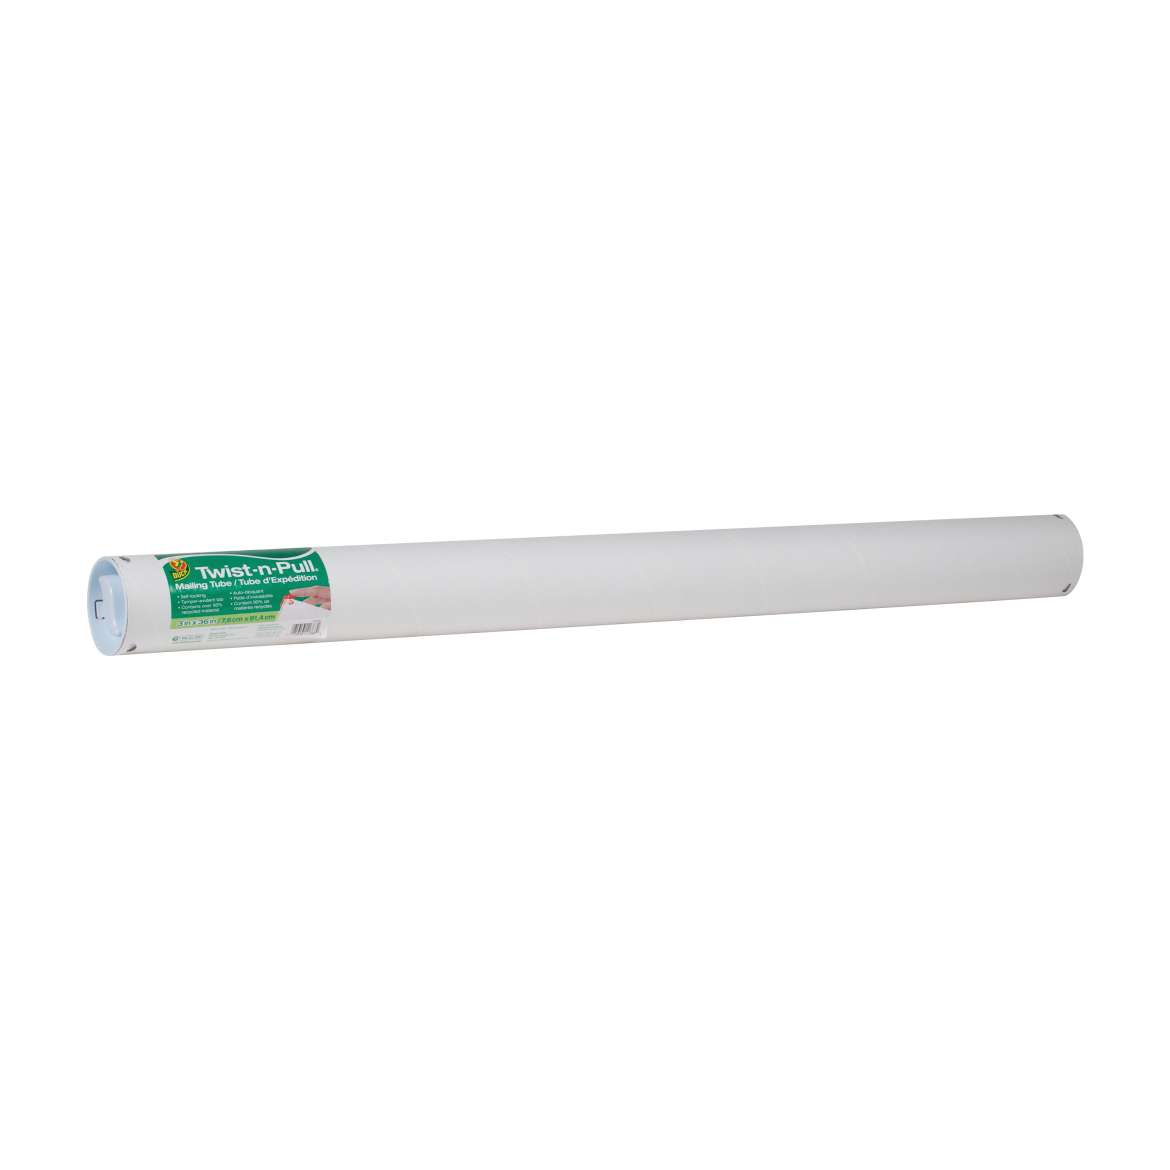 Duck® Brand Twist-n-Pull® Mailing Tube - White, 3 in. x 36 in. Image